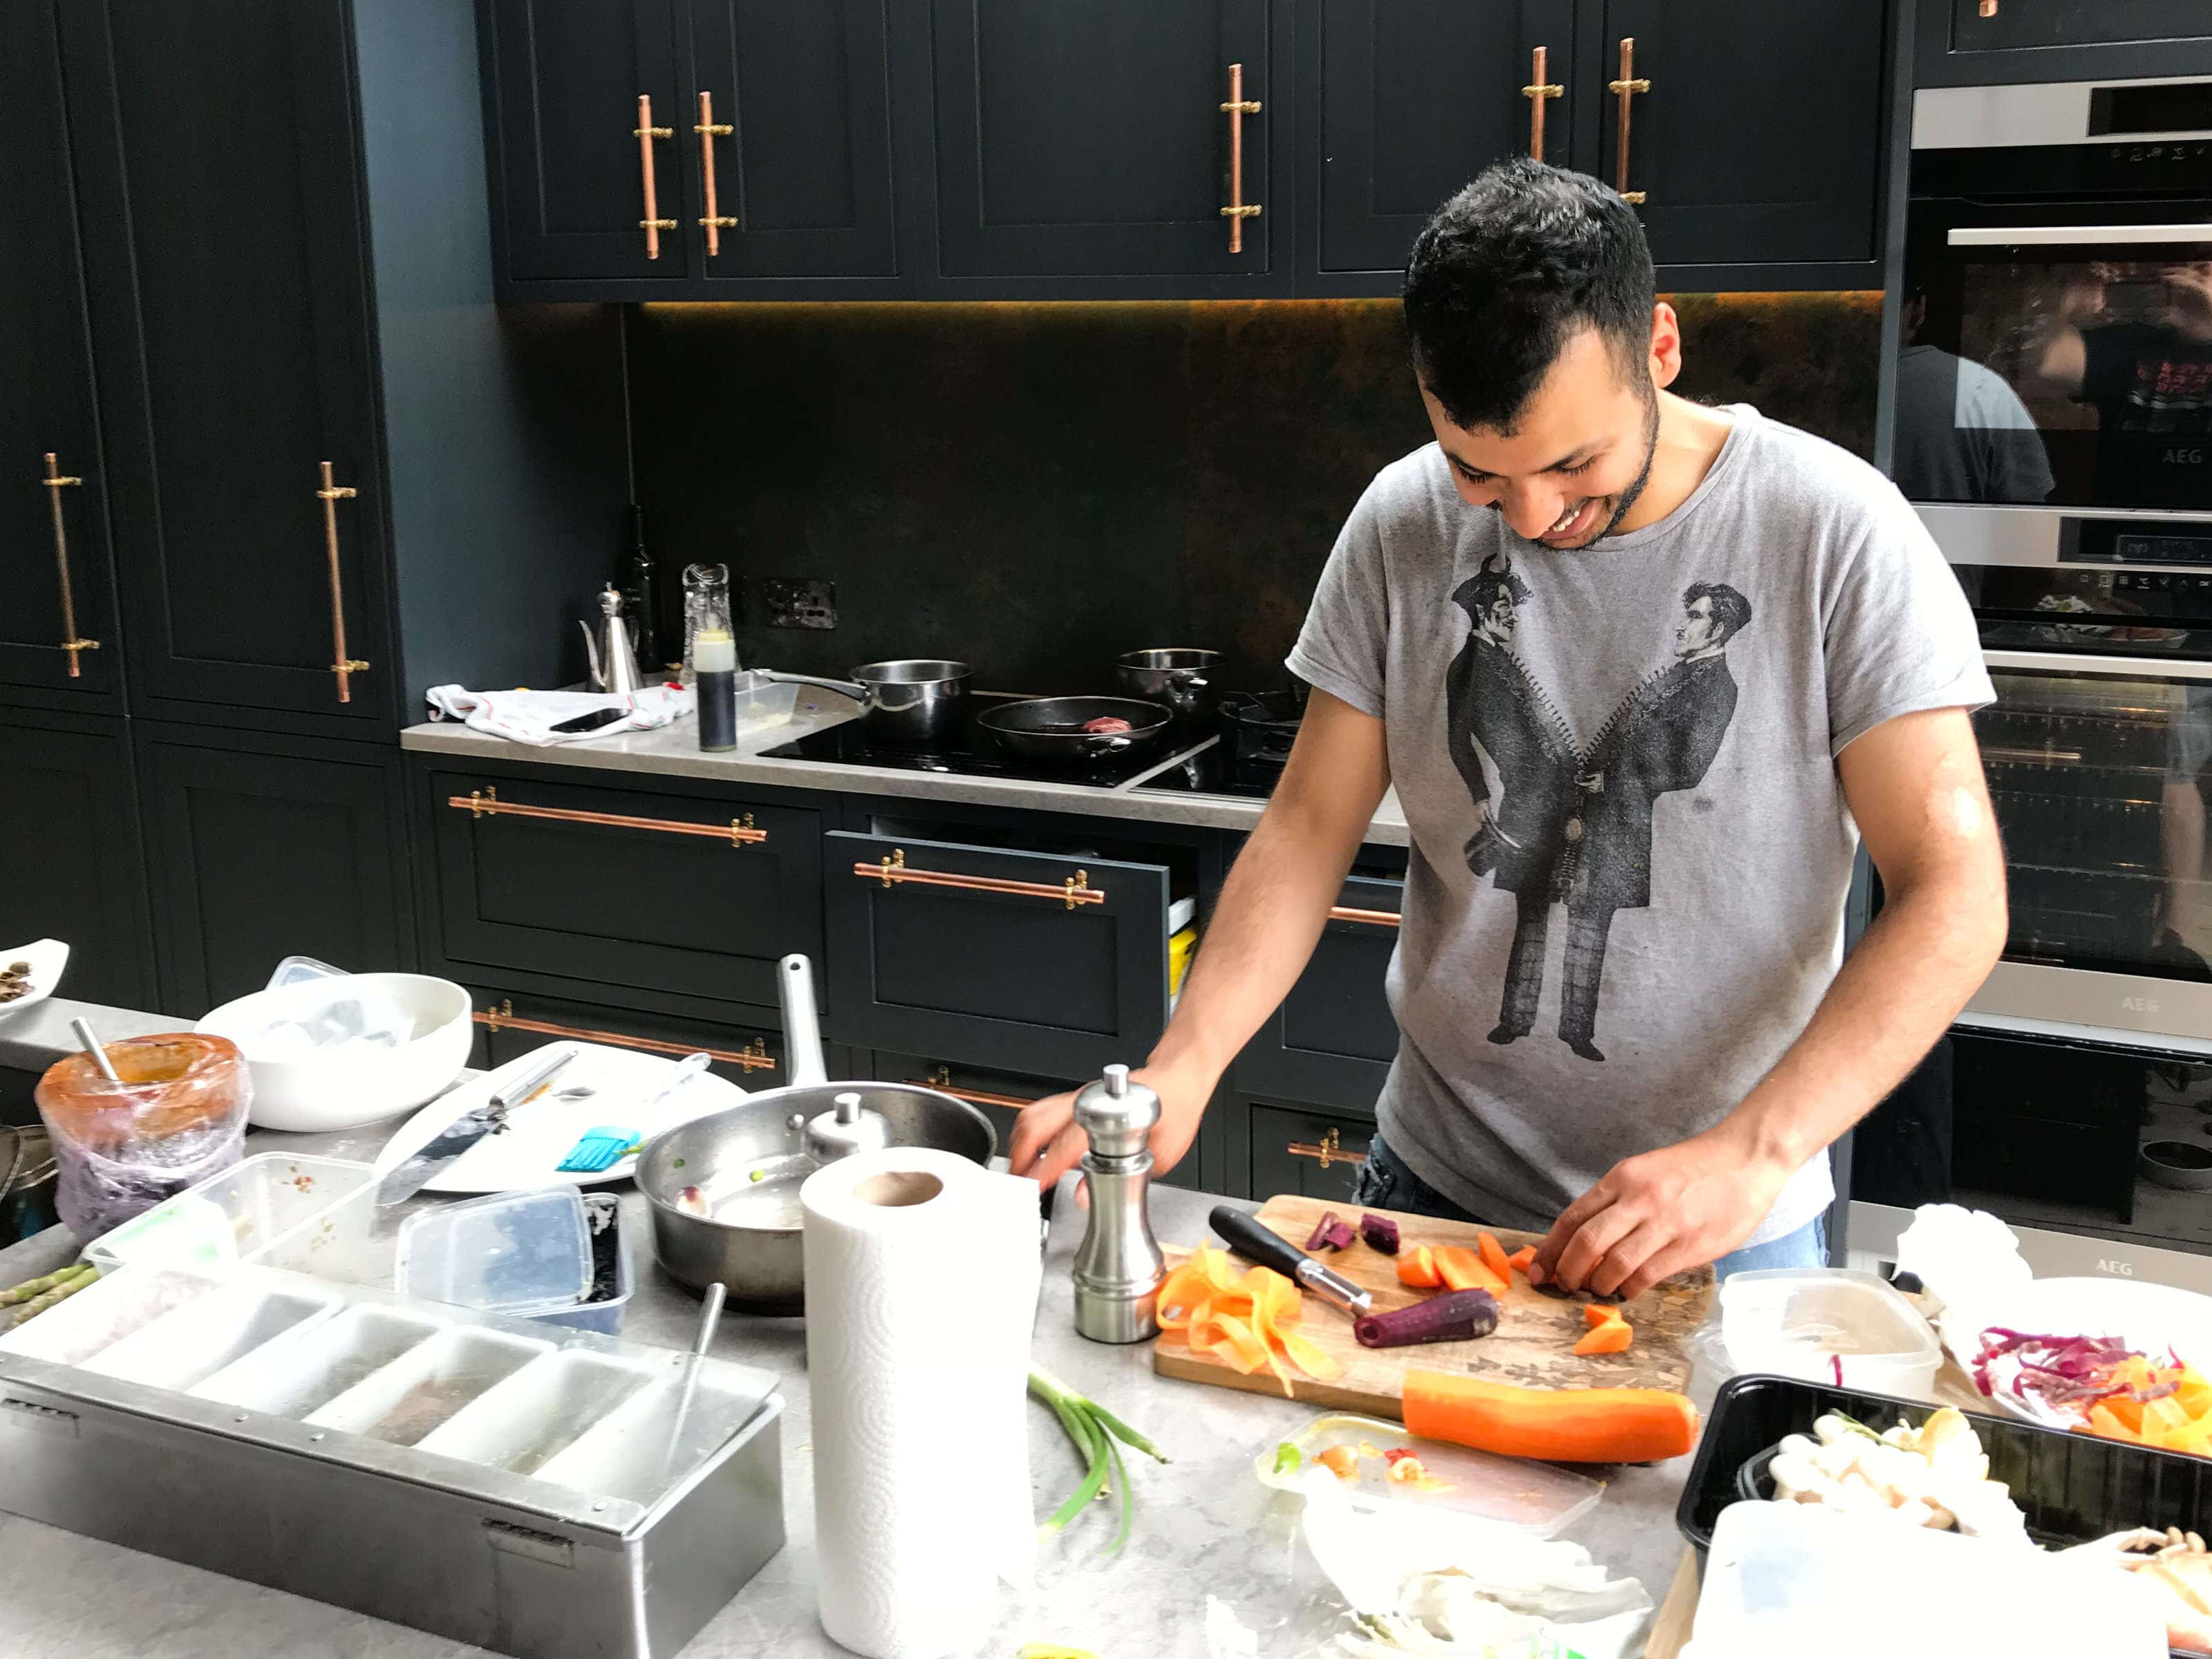 Mustapha Mouflih from Anima & Cuore in Kentish Town prepping for a photo shoot in the studio kitchen.